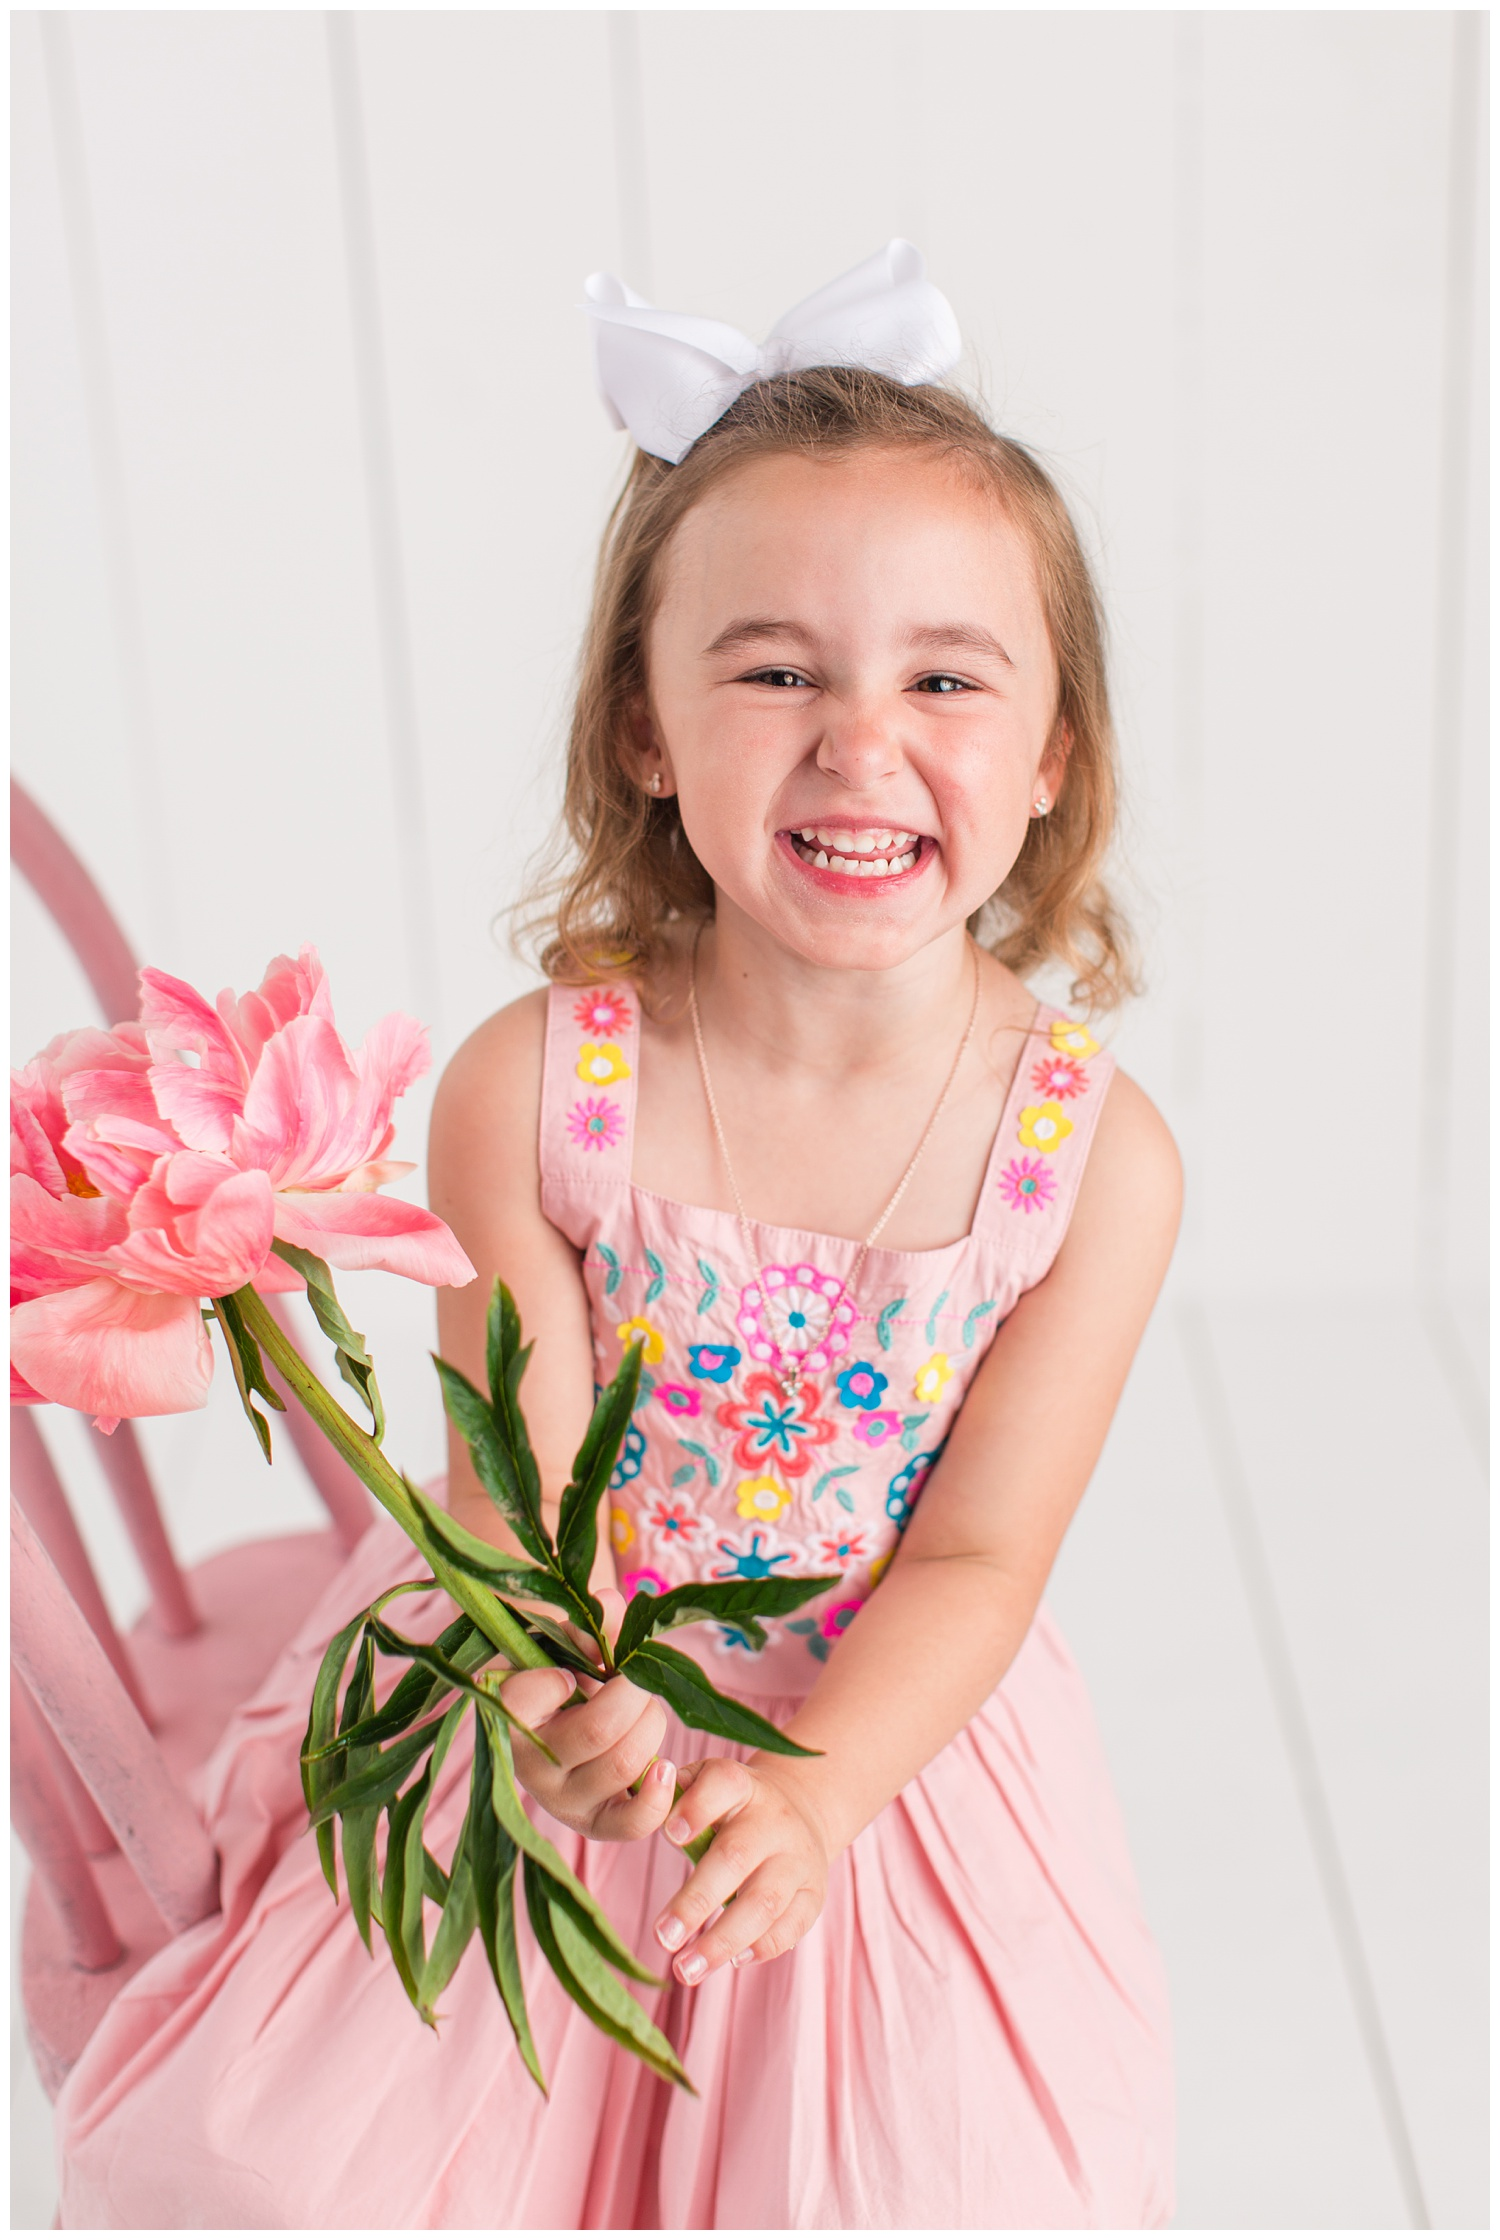 Four year old Sadie laughing while sitting on a pink chair wearing a pink dress with floral embroidered bodice and holding a pink peony stem.